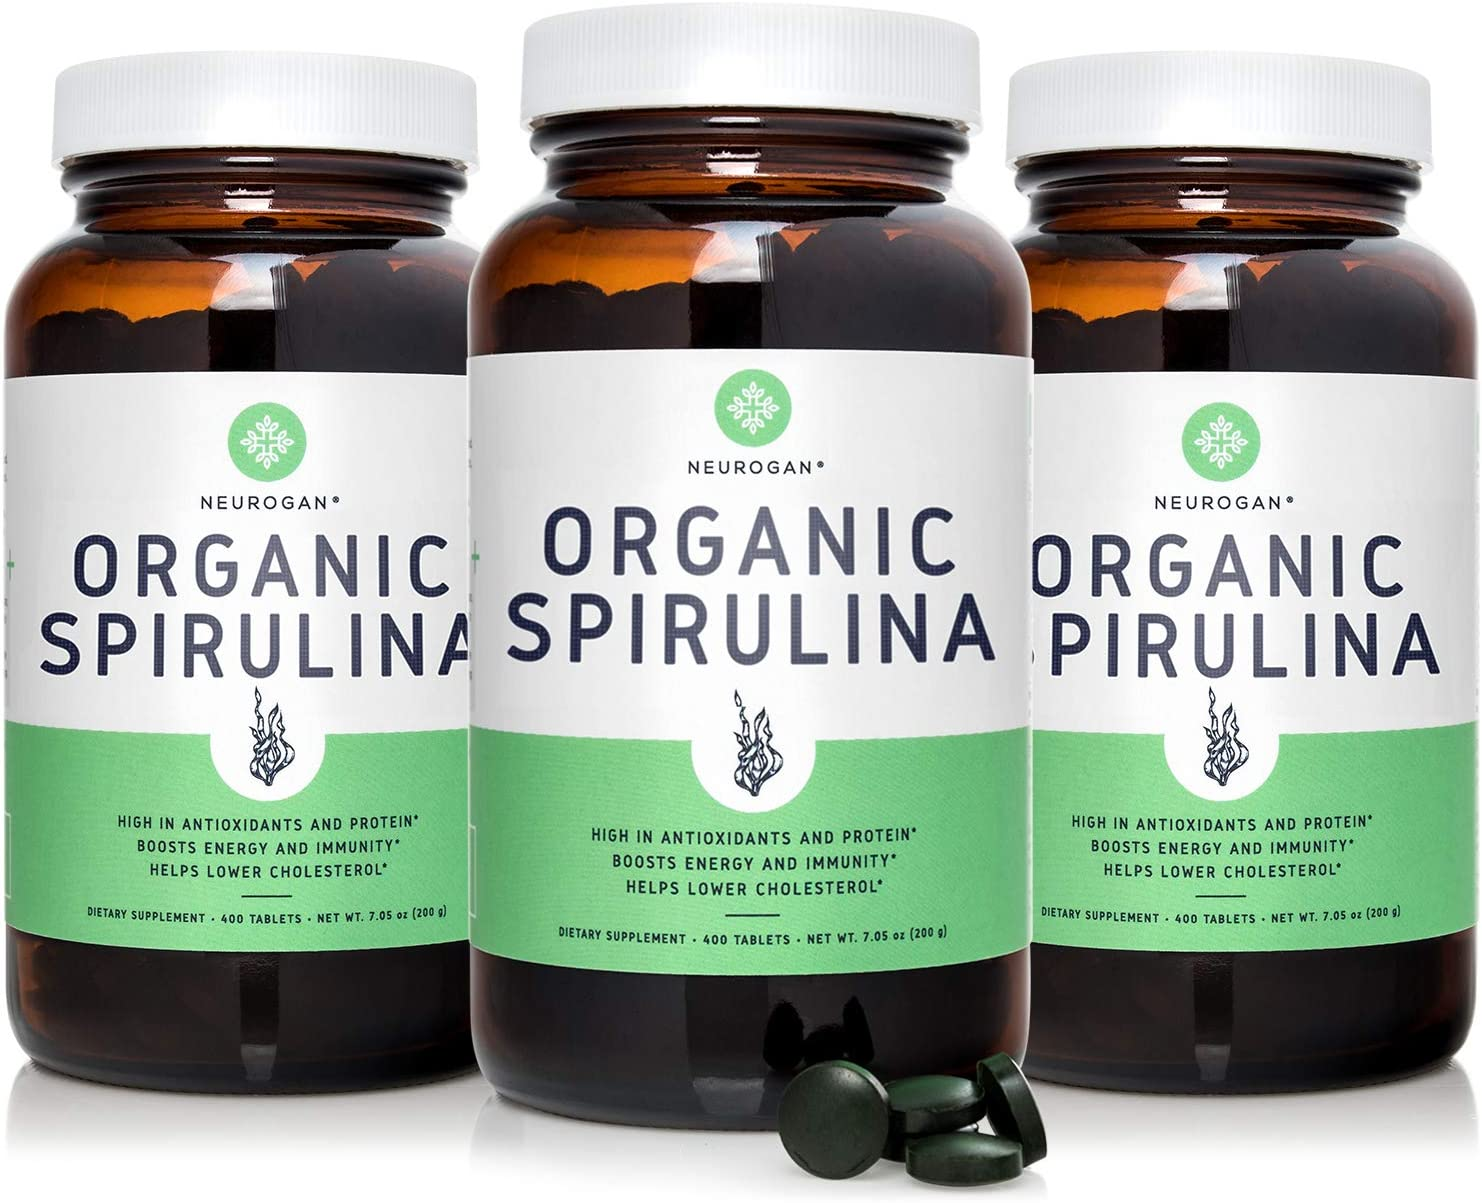 Neurogan Organic Spirulina Tablets USDA Certified, 500mg Tablets, 3-Pack – Raw, Natural & Pure Vegan Algae Superfood Rich in Vitamins, Minerals & Protein – Non-Irradiated, Non-GMO